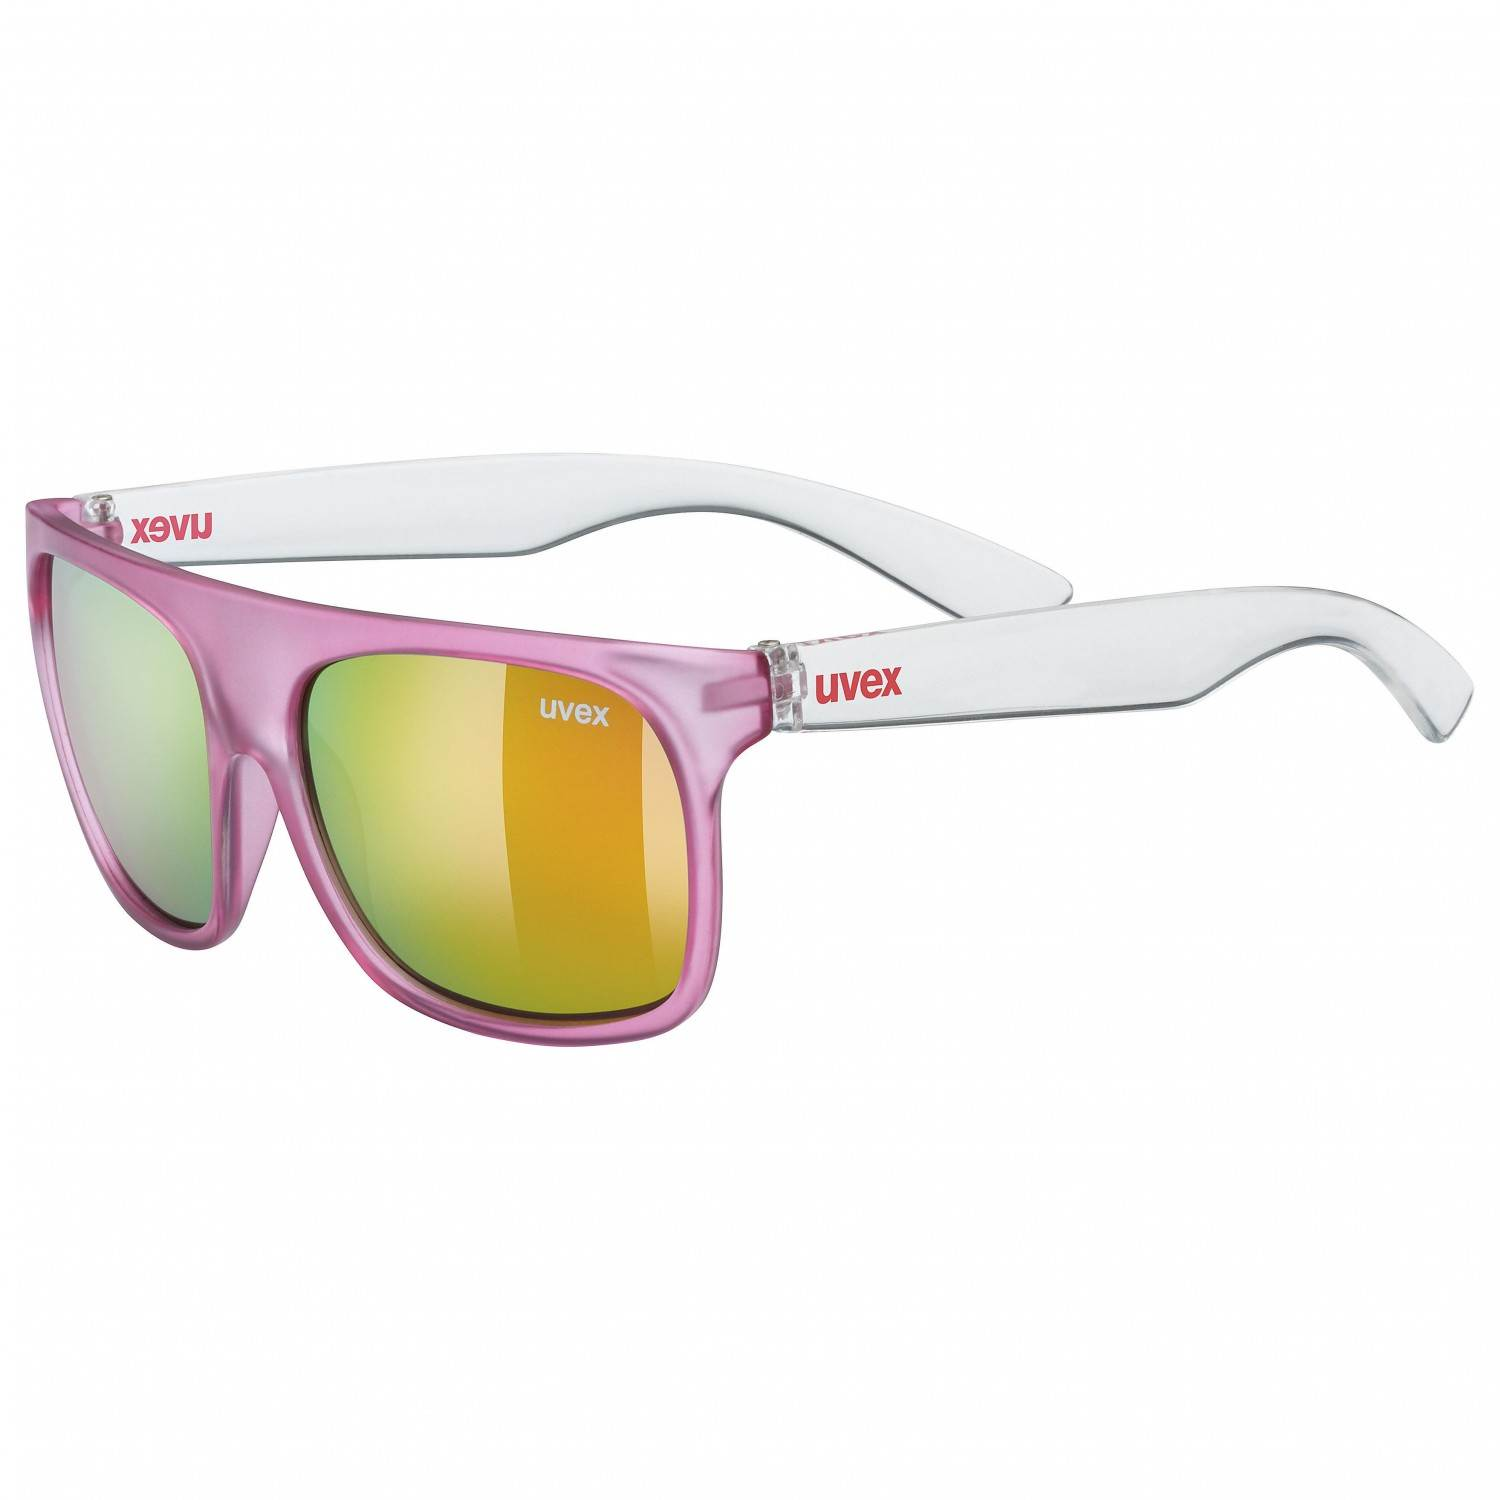 uvex-sportstyle-511-kinder-sportbrille-farbe-3916-pink-clear-mirror-pink-s3-